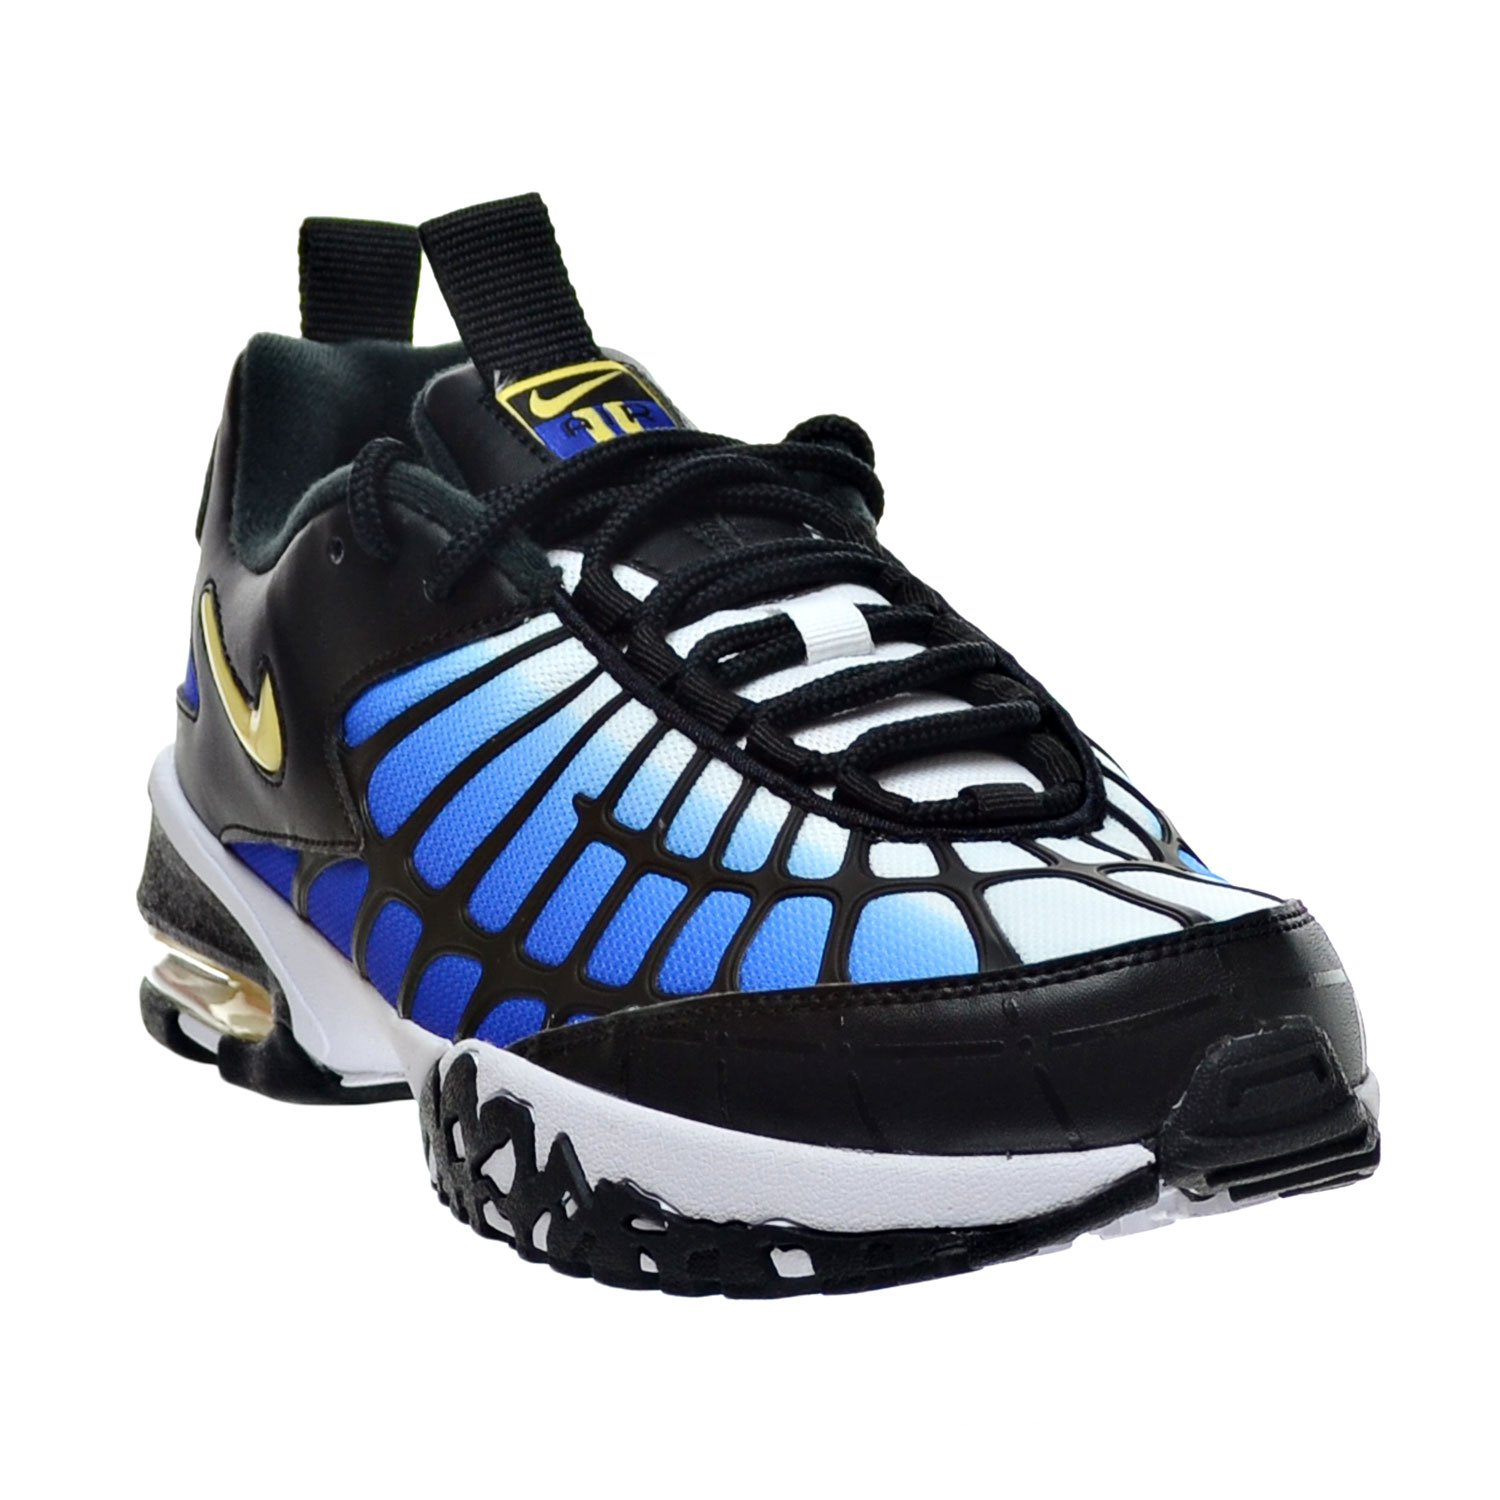 Nike Air Max 120 Men s Shoes Hyper Blue Chamois Black White 819857-400 (13  D(M) US)  Amazon.co.uk  Shoes   Bags 7393ca1a6